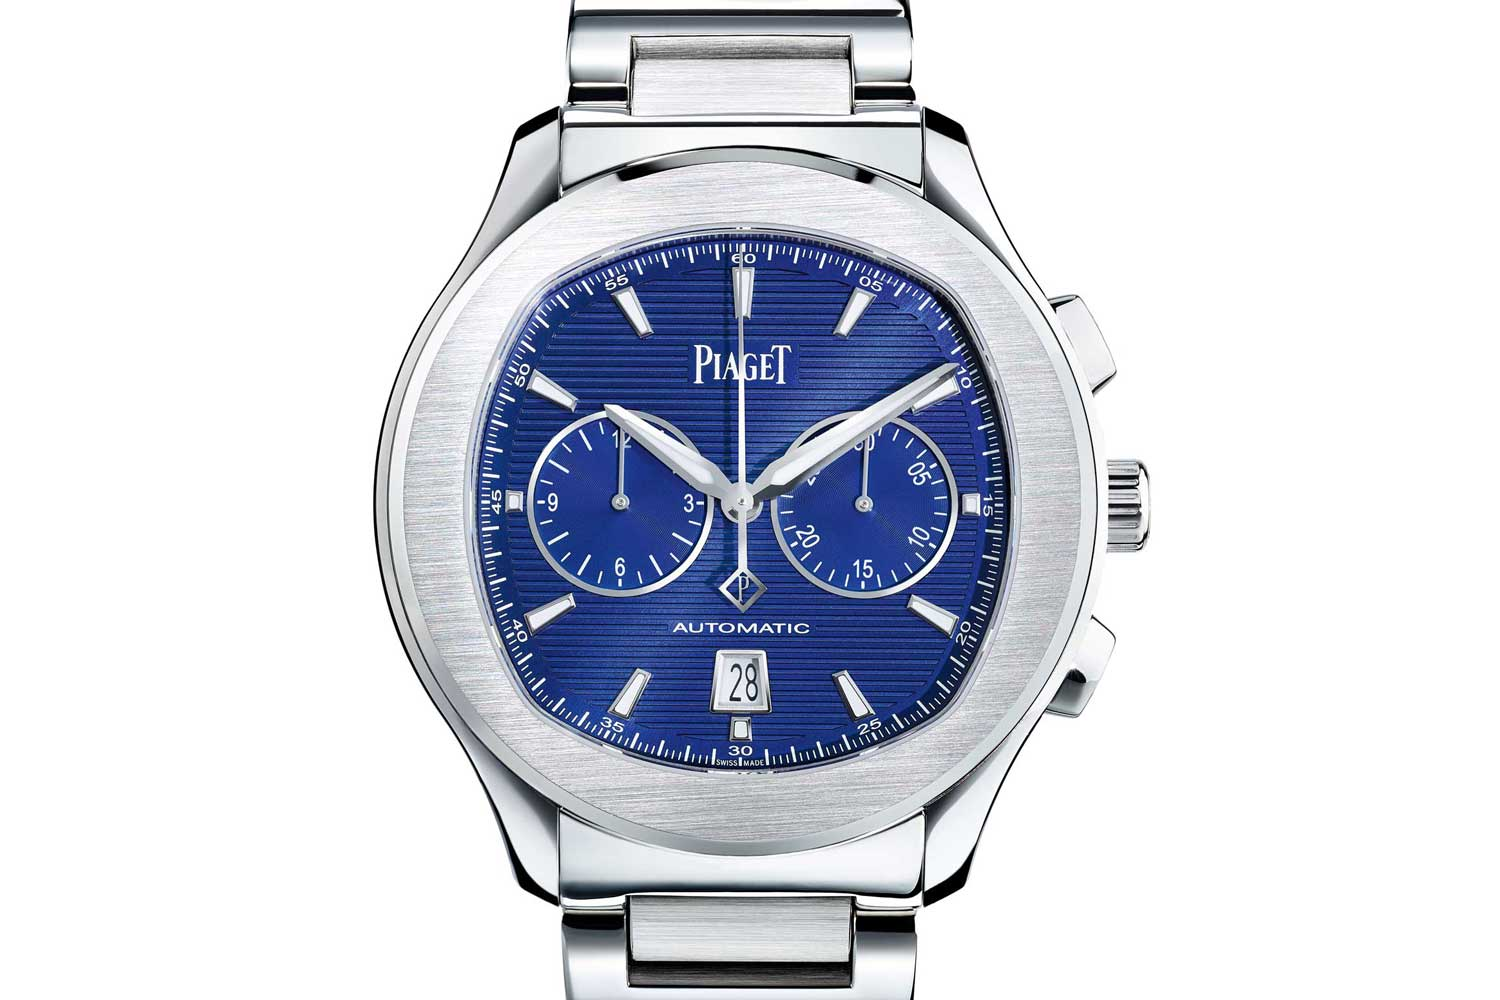 Piaget Polo S chronograph driven by the cal. 1160P in-house movement